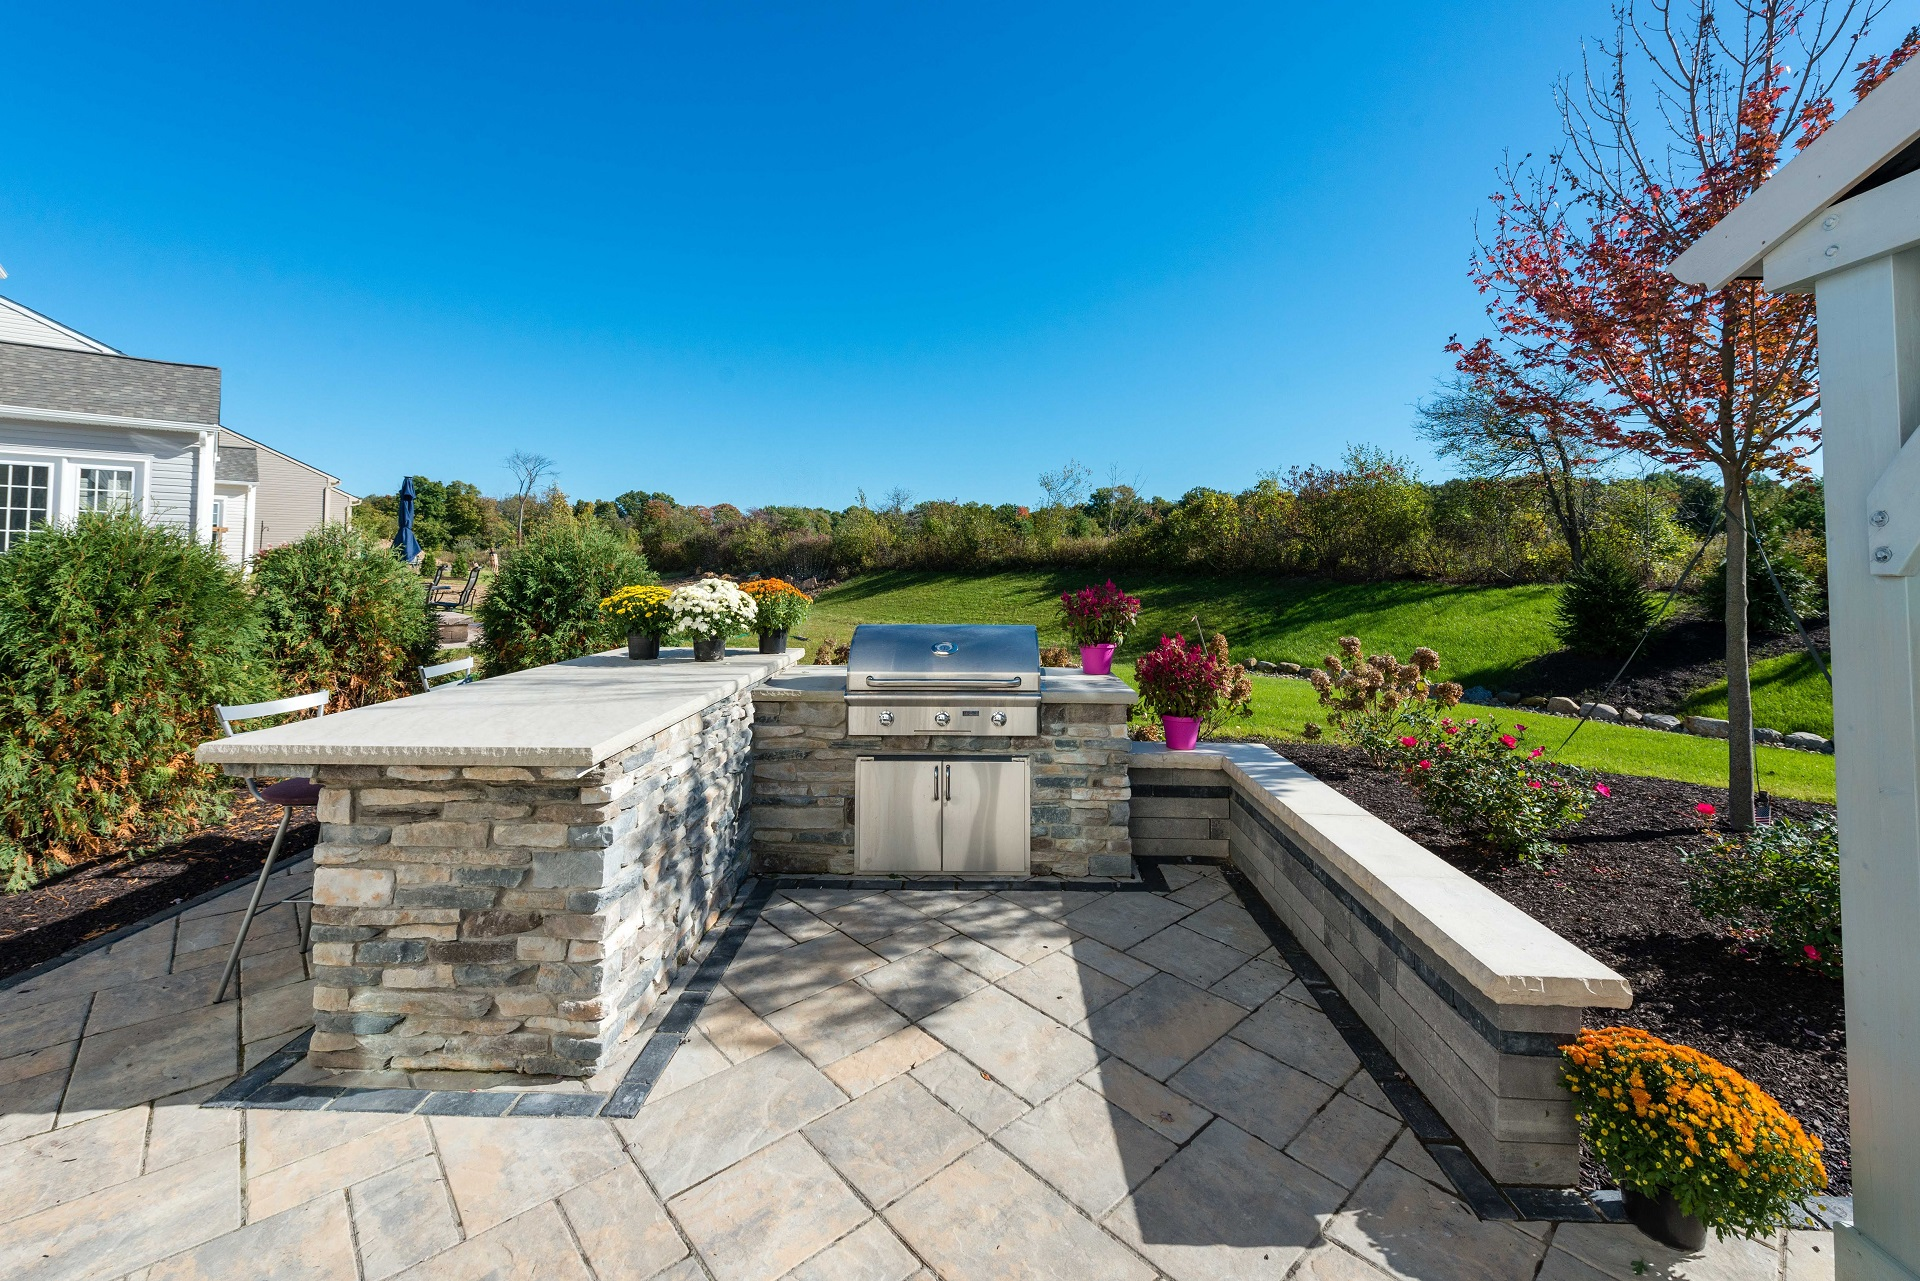 Brick patio with top outdoor kitchen in Chagrin Falls, OH